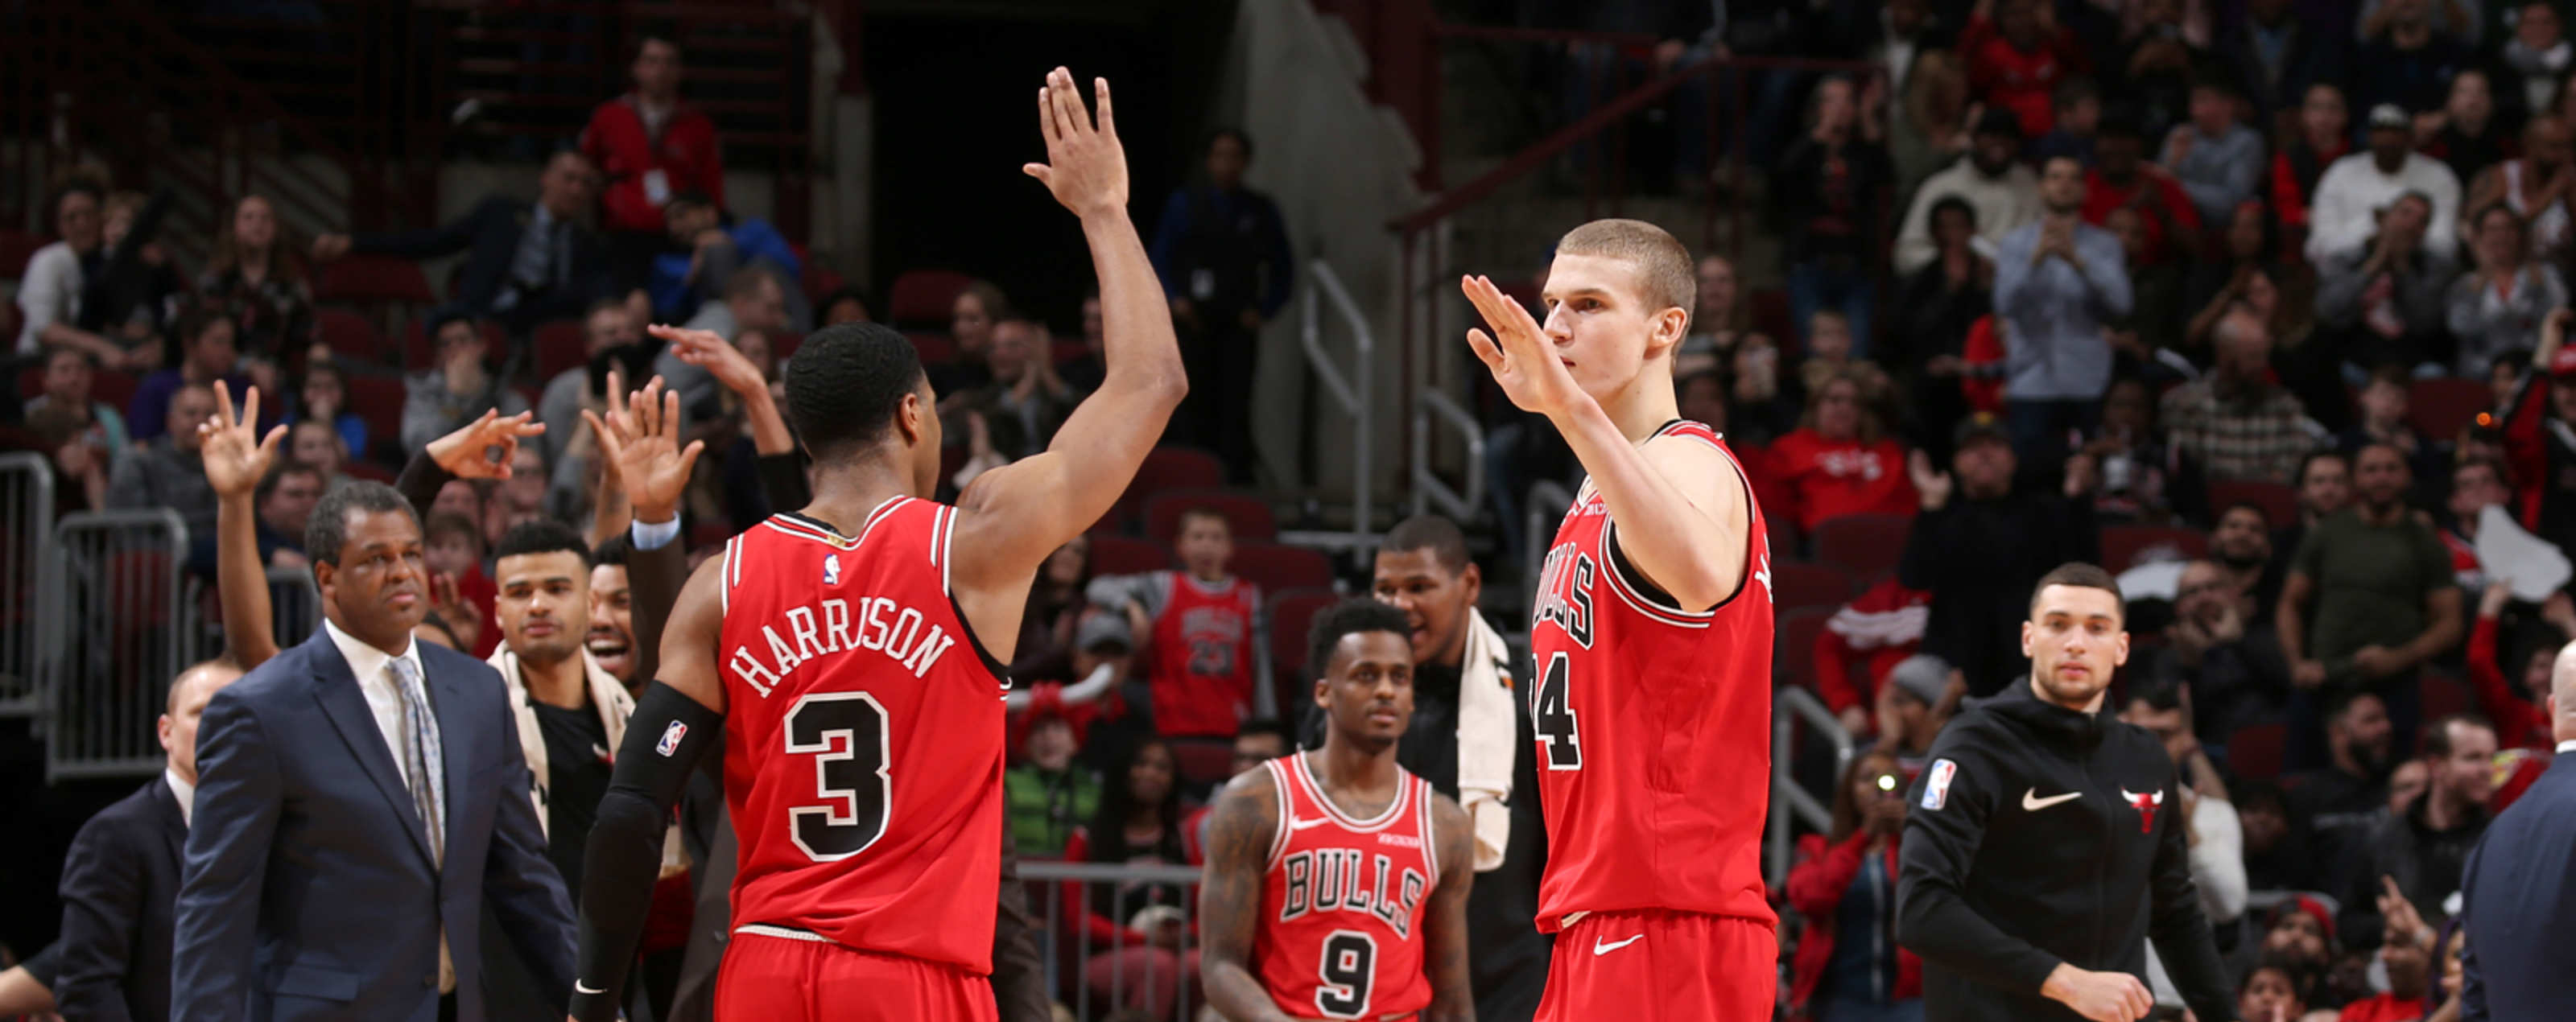 Shaquille Harrison #3 and Lauri Markkanen #24 of the Chicago Bulls high five during the game against the Washington Wizards on March 20, 2019 at the United Center in Chicago, Illinois